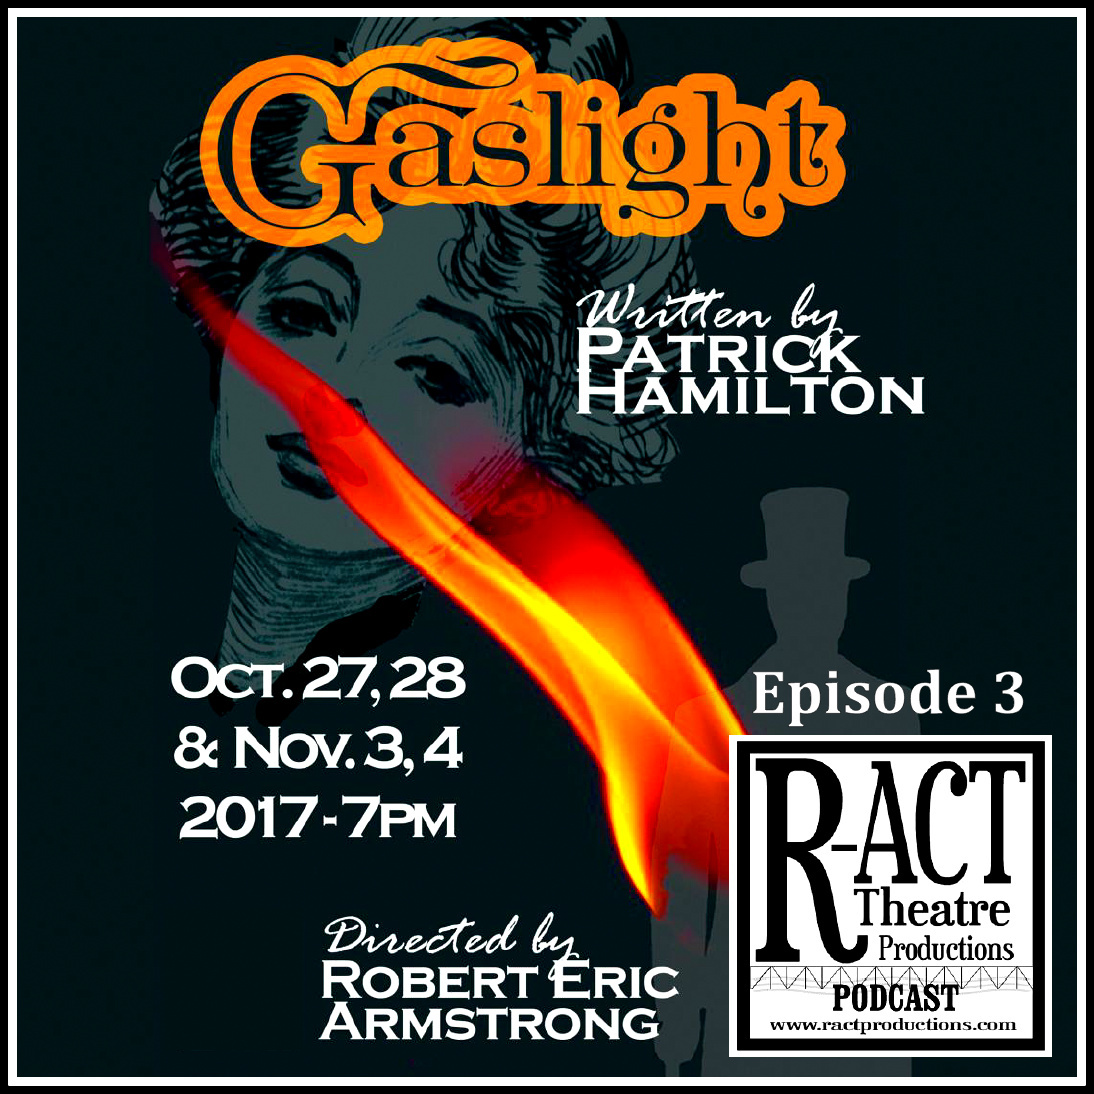 COVER ART - R-ACT03 - GASLIGHT